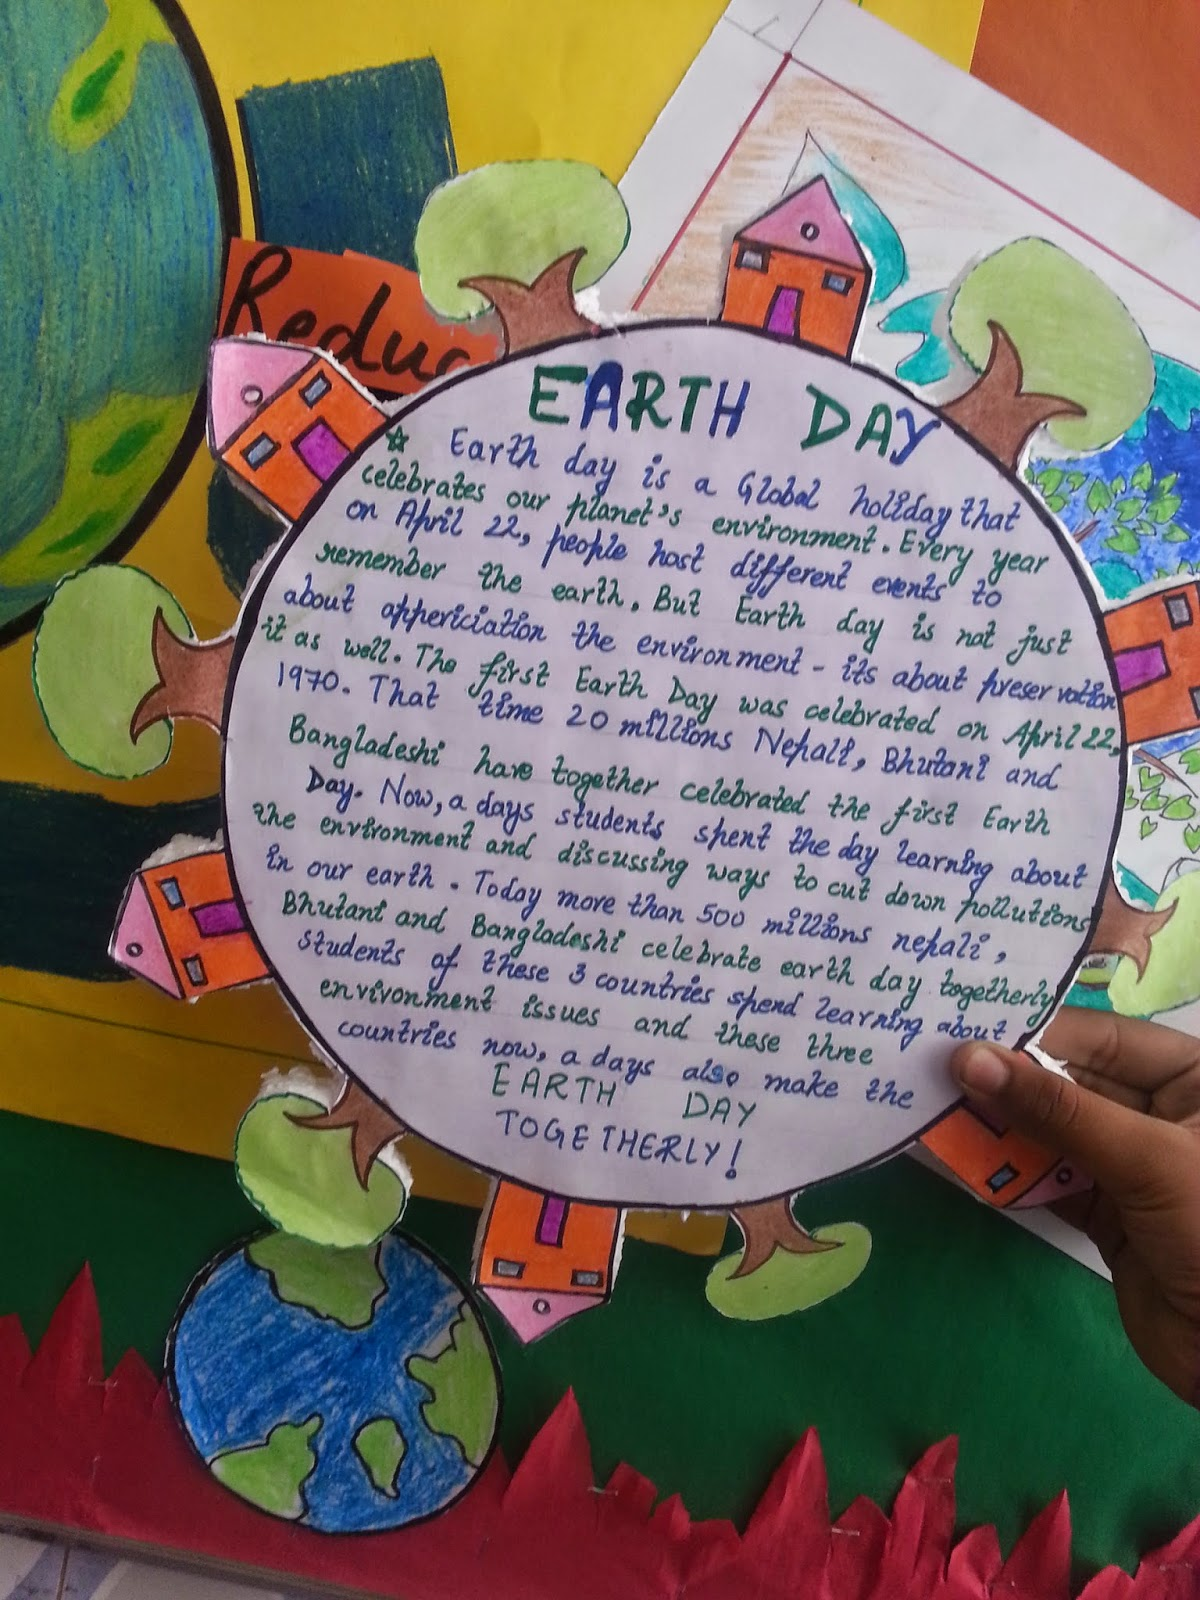 a skit on earth day